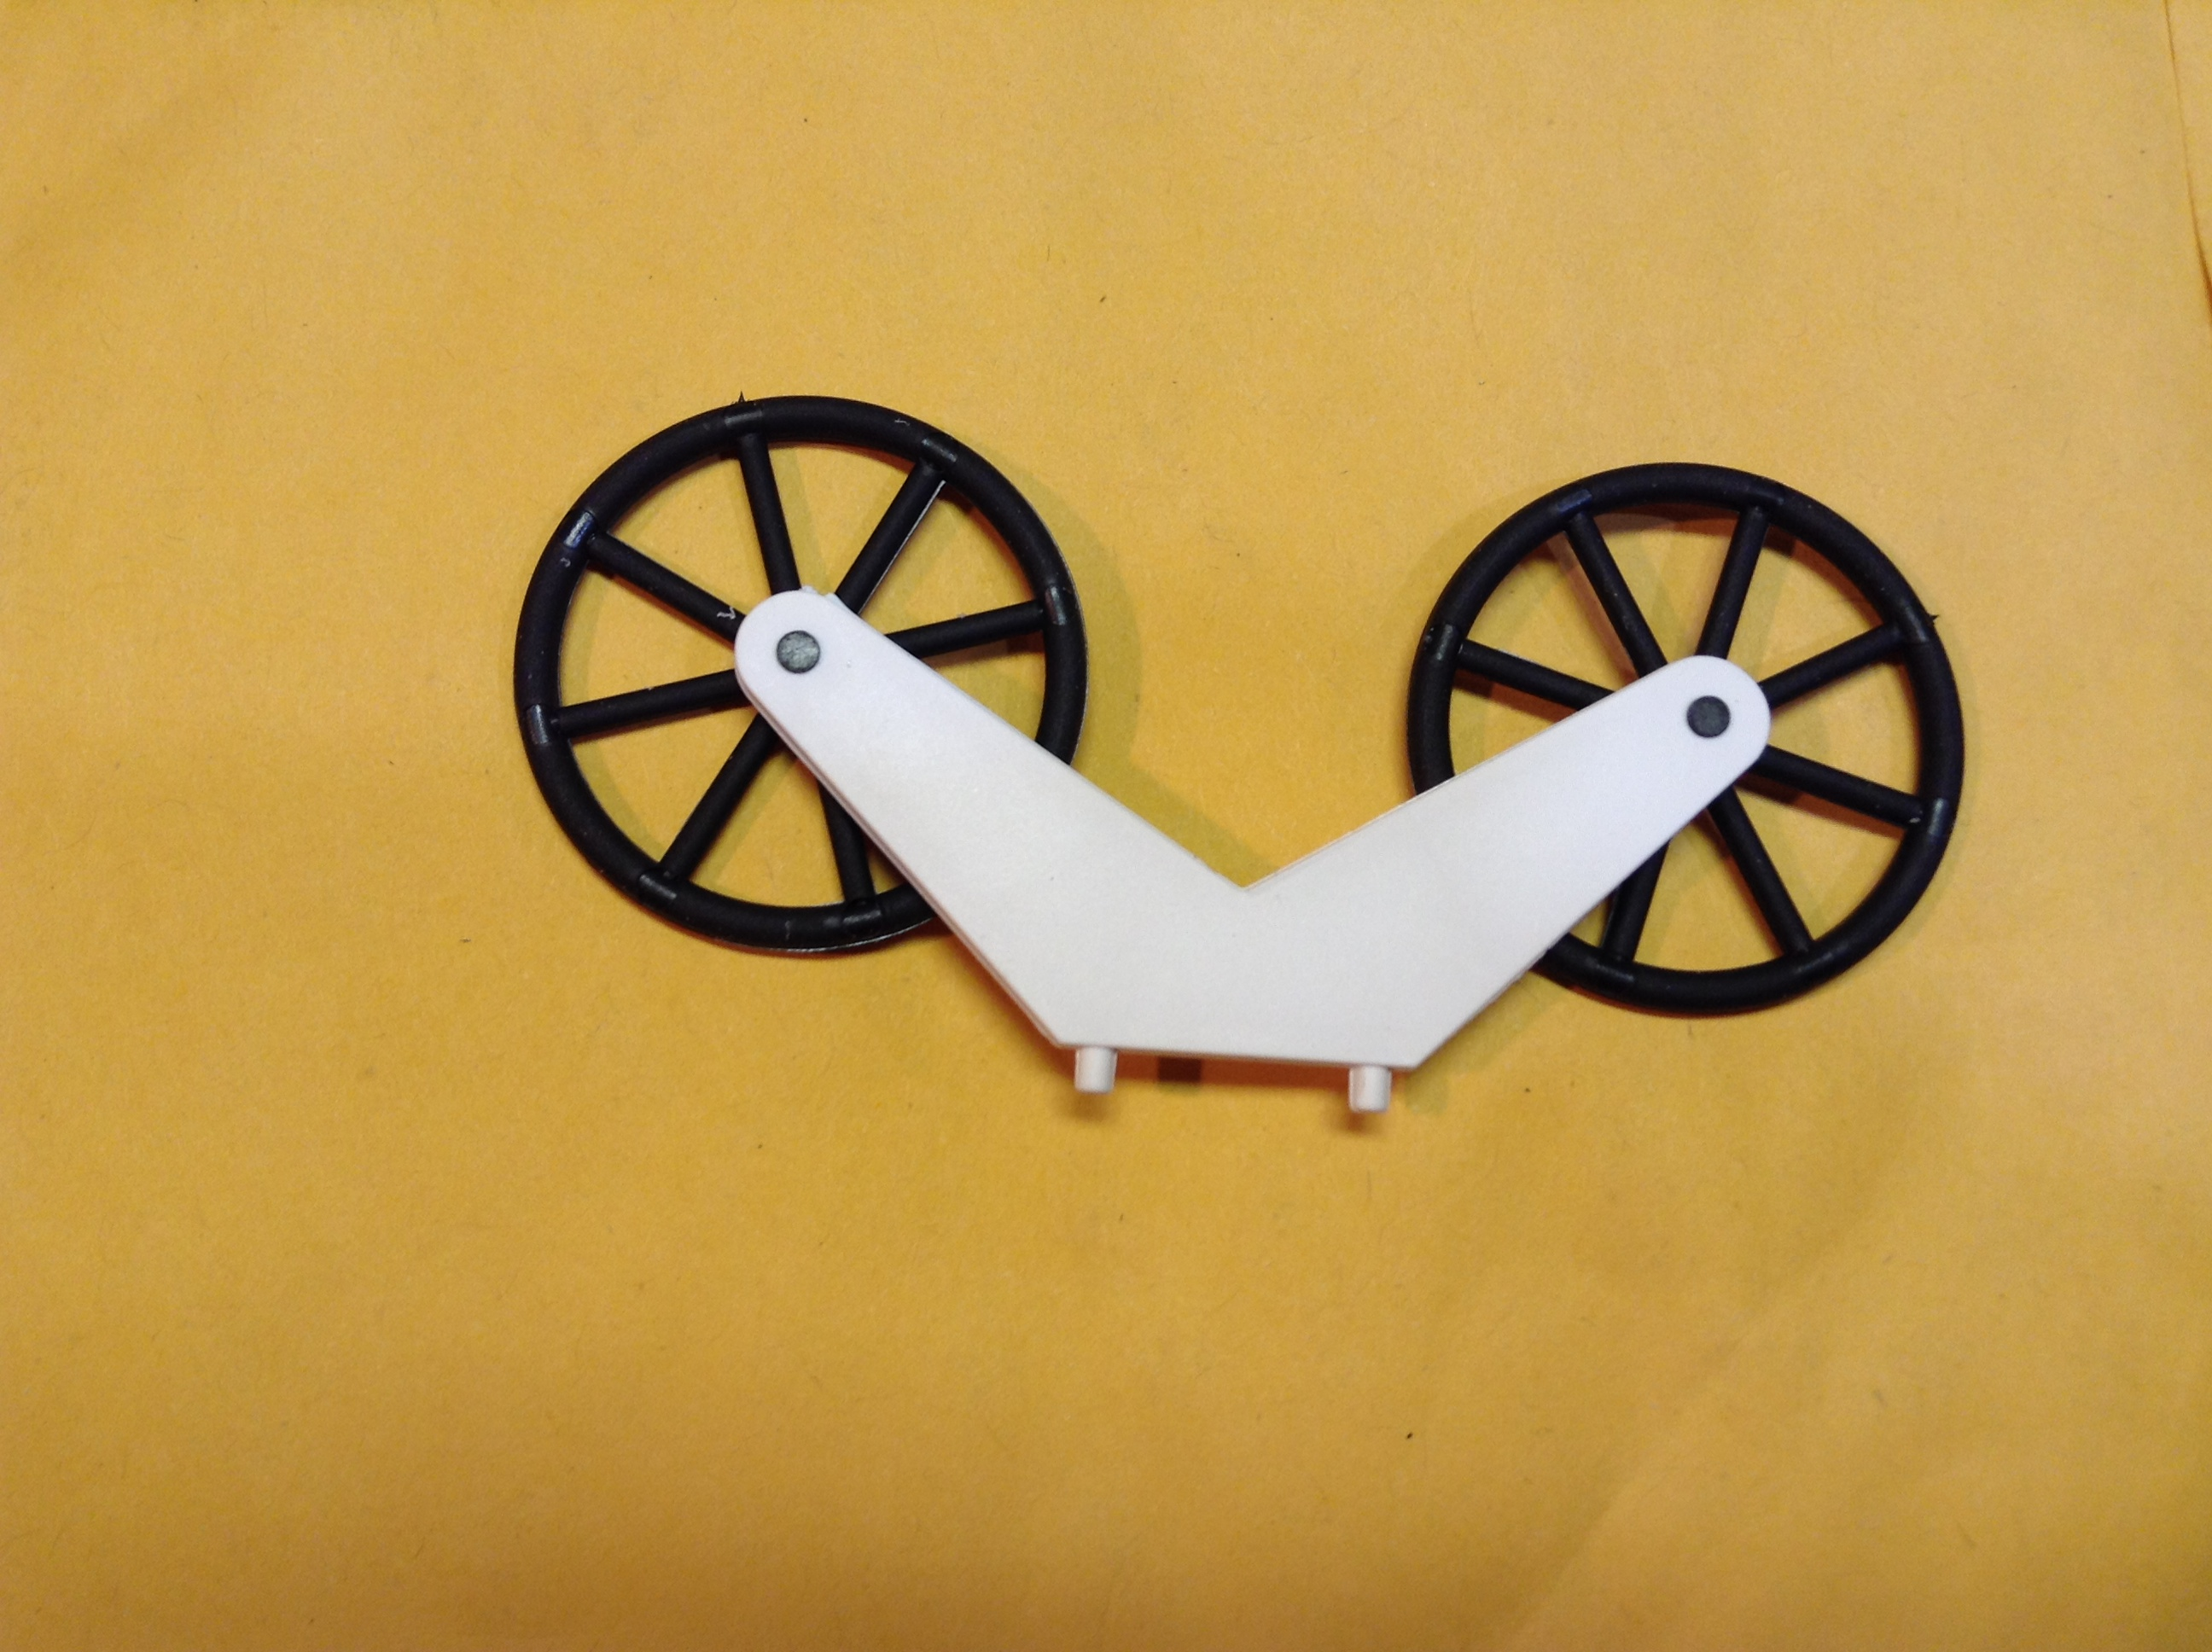 Click image for larger version  Name:vic wheels.JPG Views:68 Size:1.14 MB ID:2001152